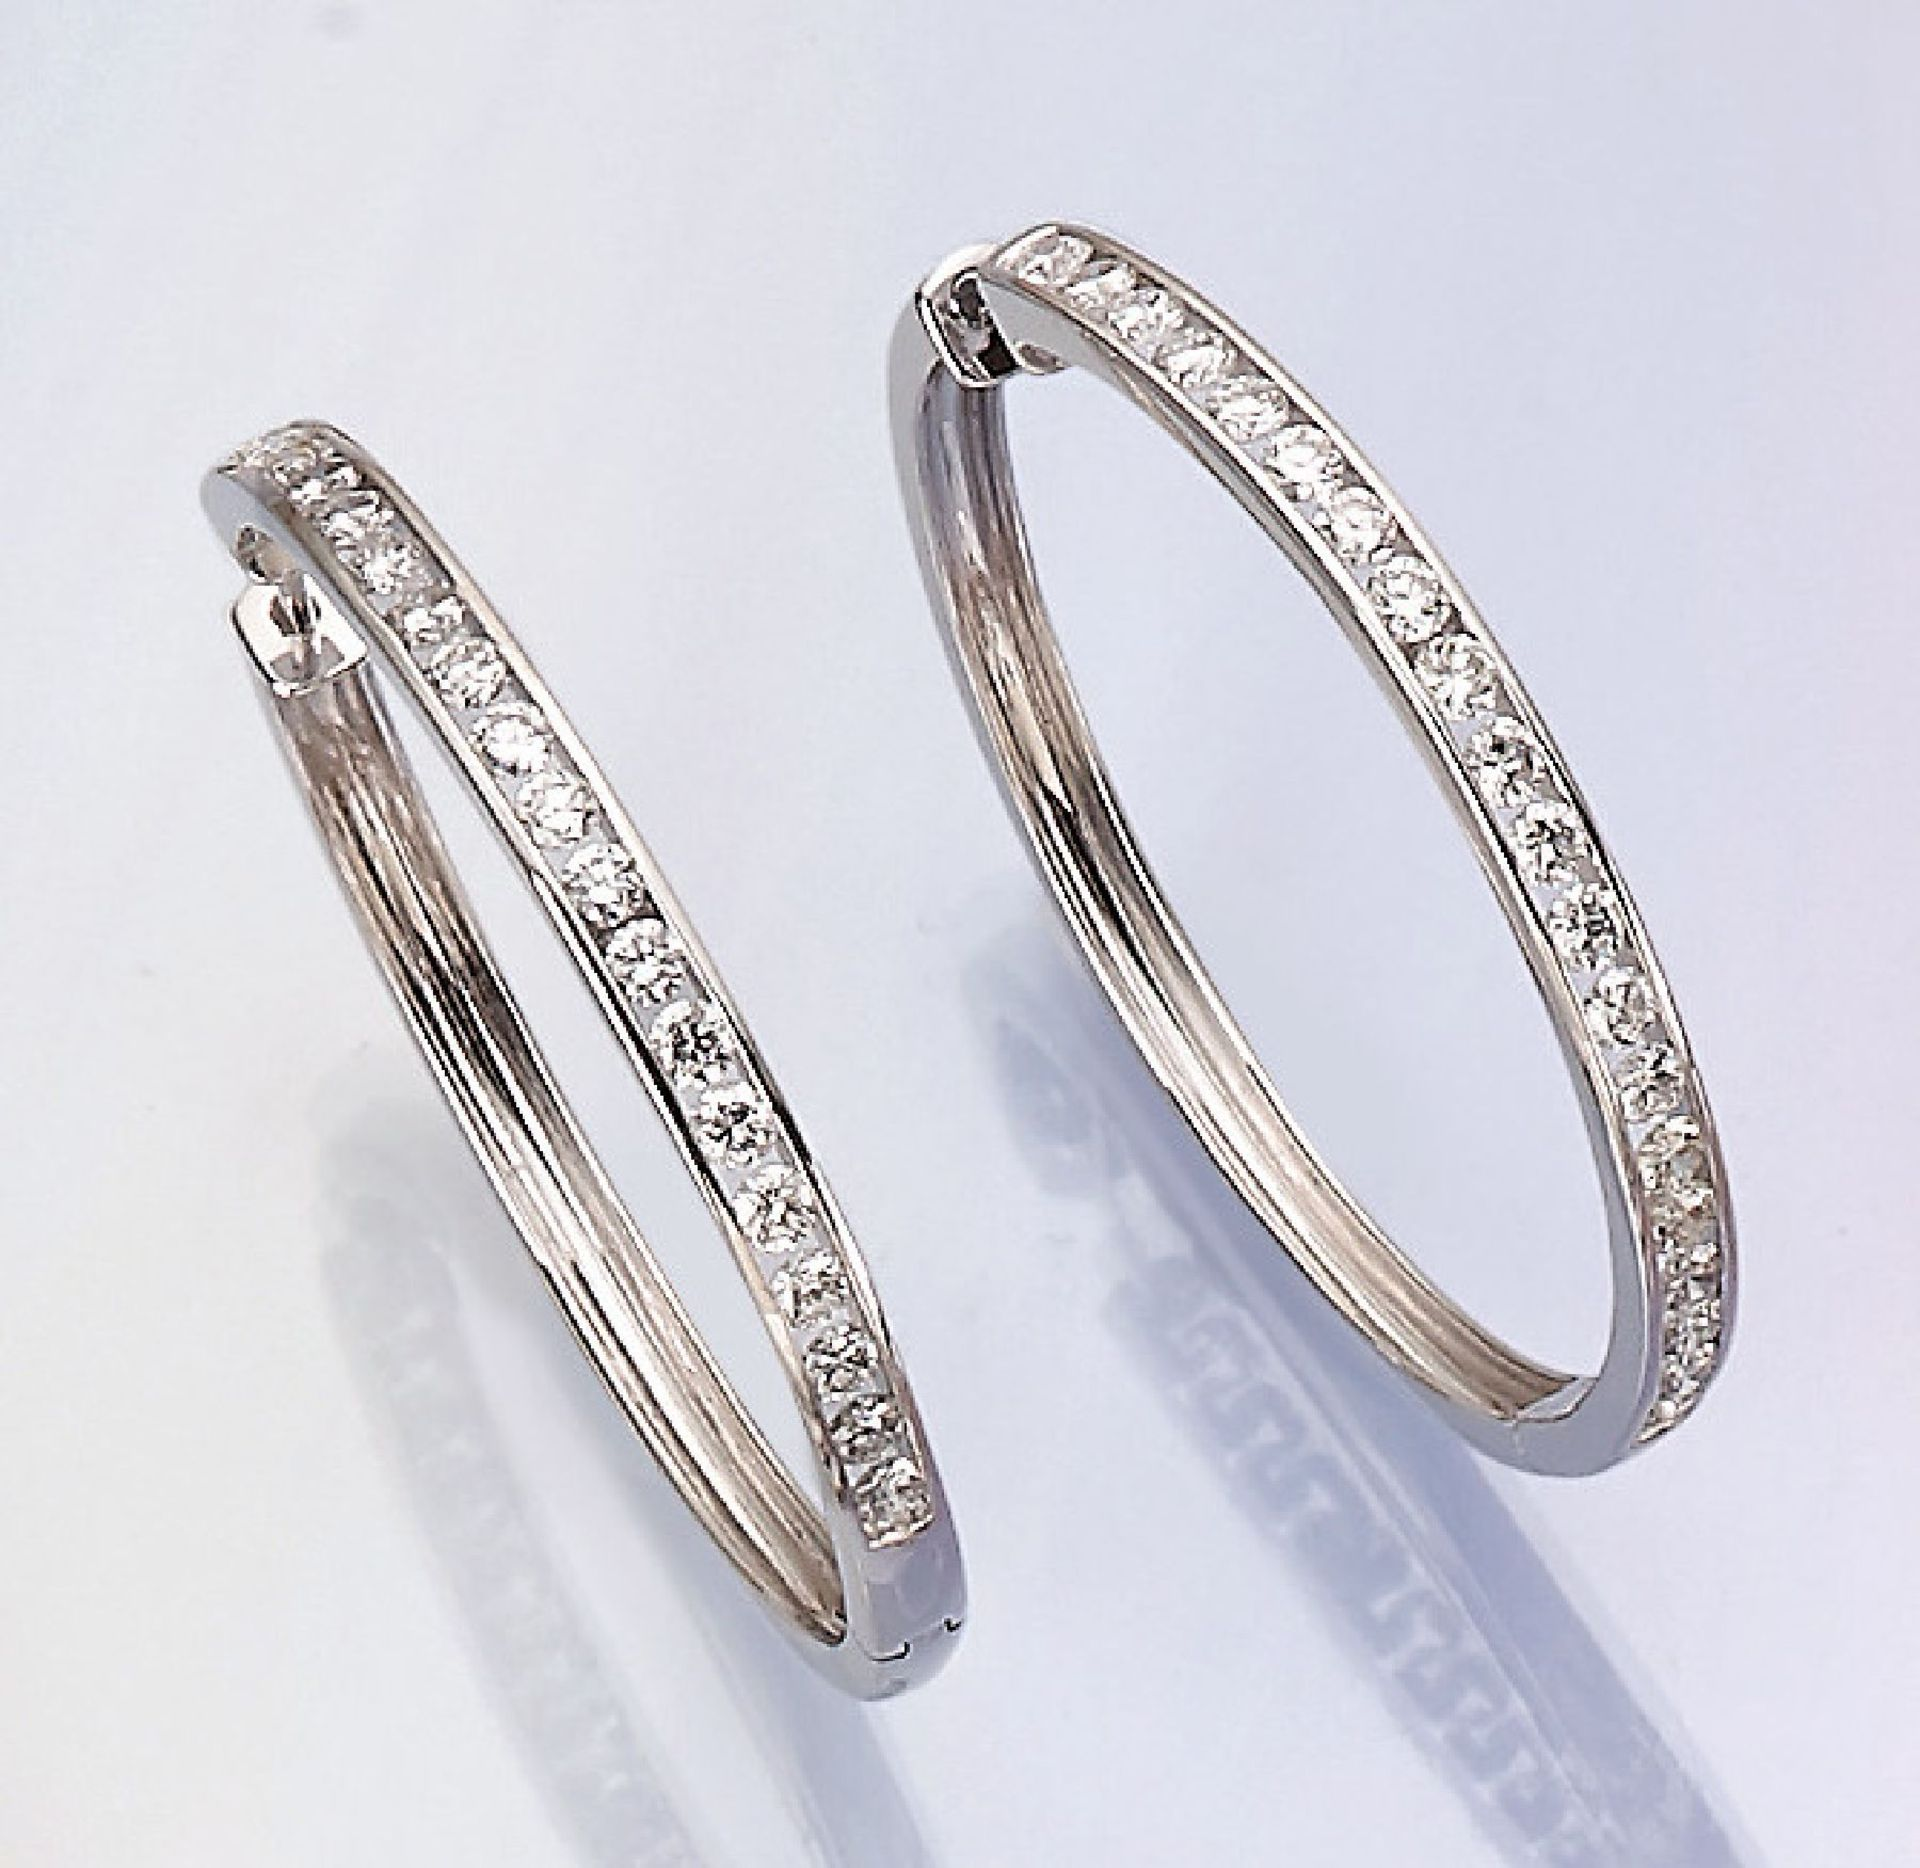 Los 31547 - Pair of big 14 kt gold hoop earrings with brilliants , WG 585/000, 40 brilliants totalapprox. 2.19